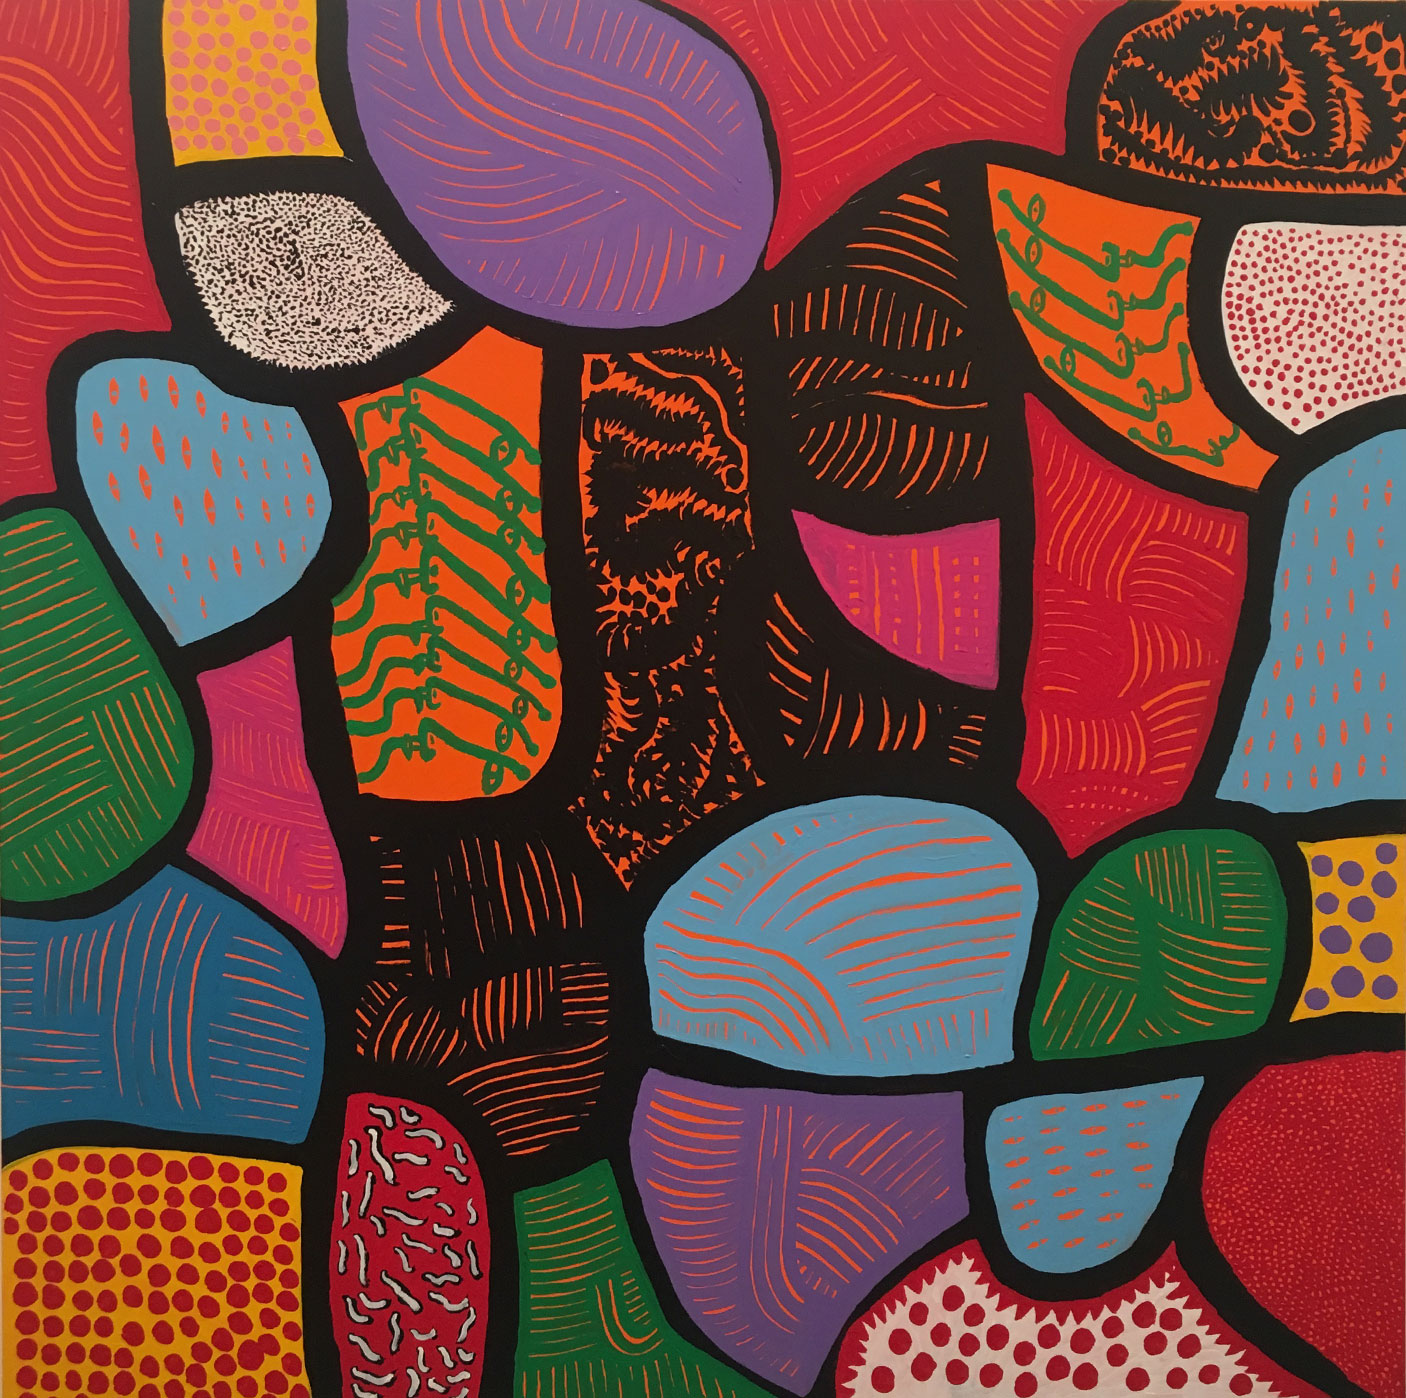 My eternal soul paintings, Yayoi Kusama, Victoria Miro